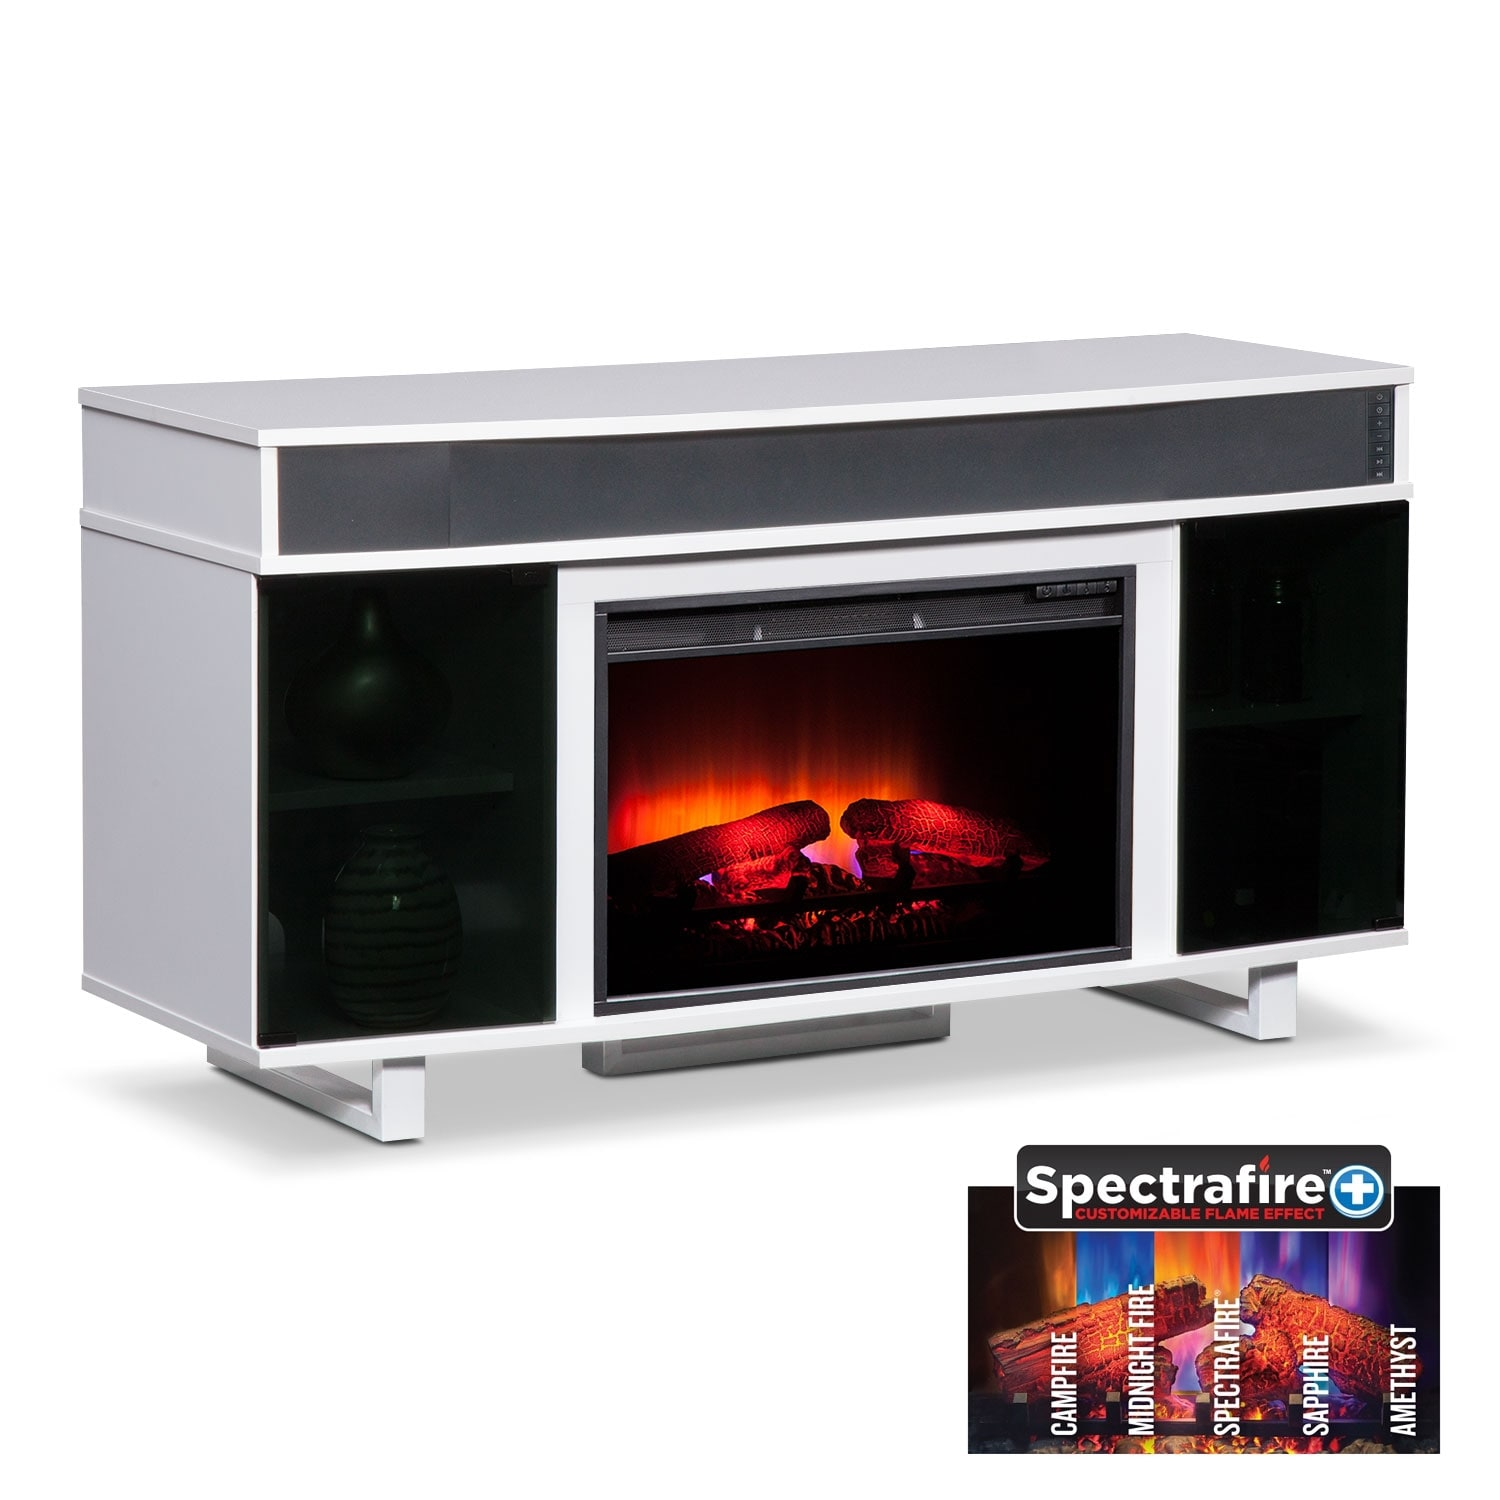 "Pacer 56"" Traditional Fireplace TV Stand with Sound Bar - White"